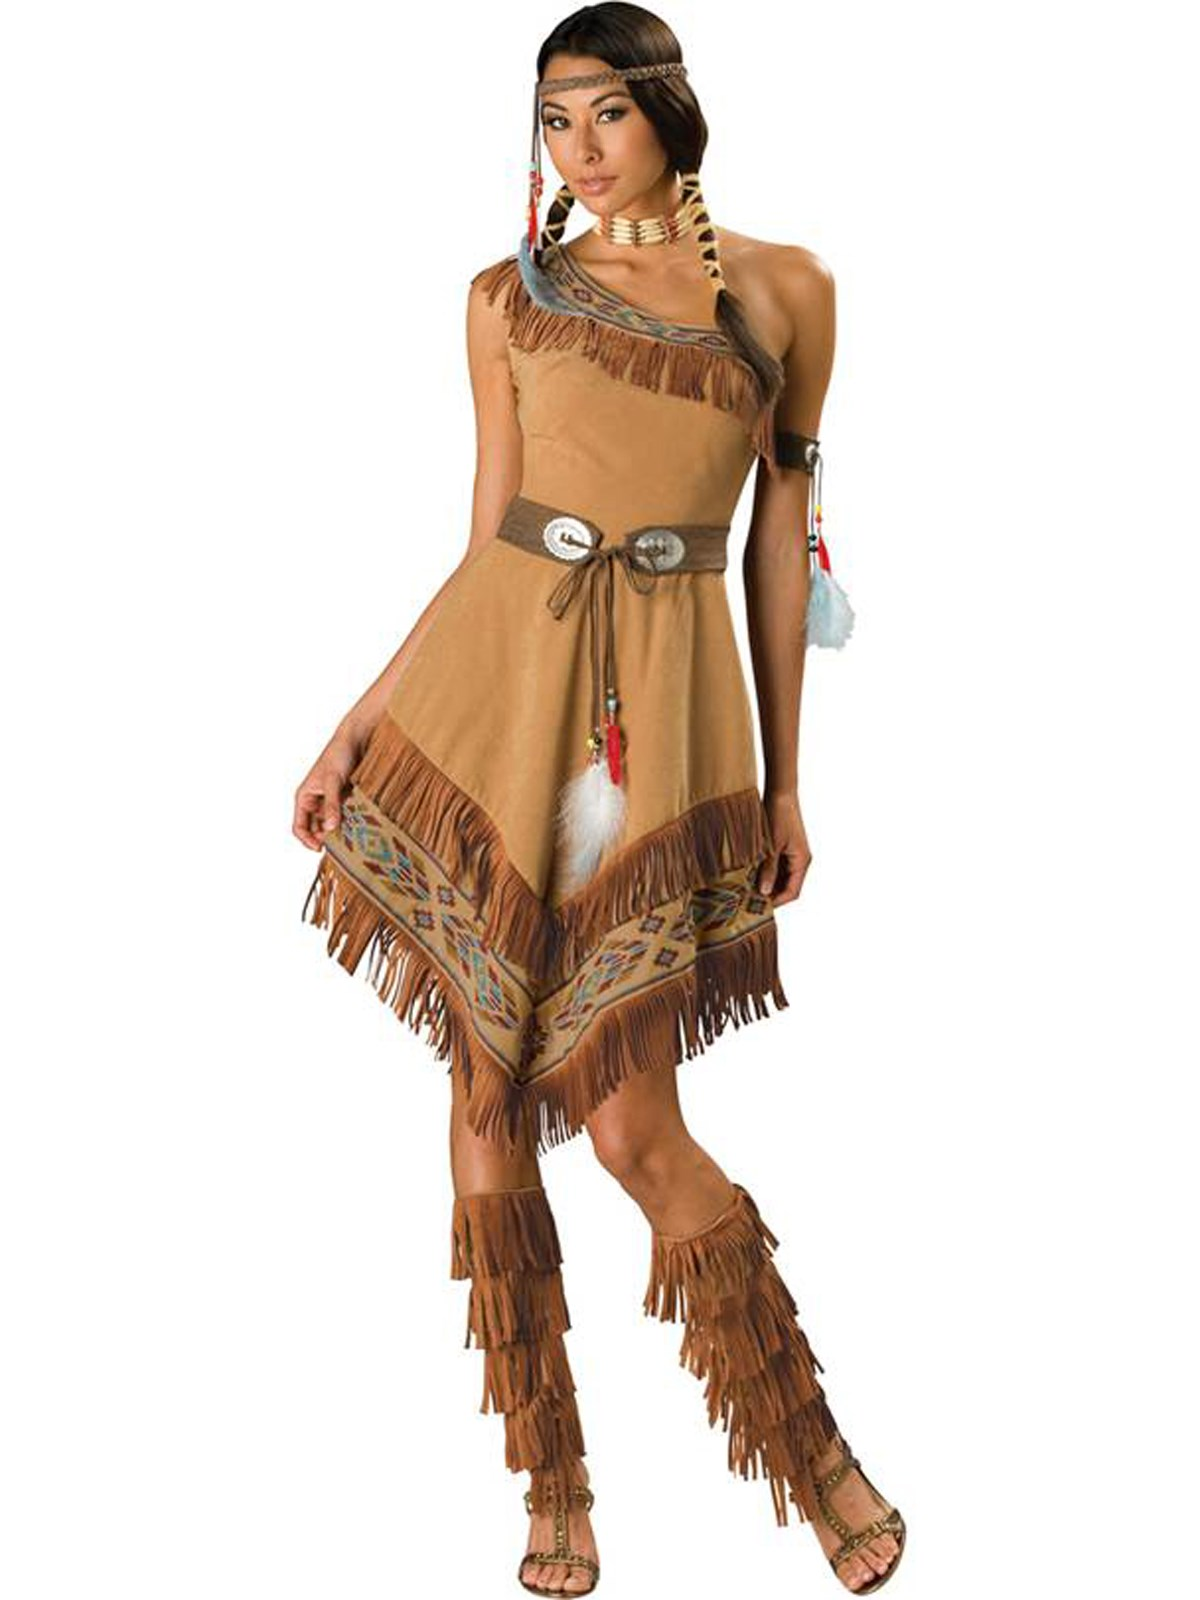 Image of Indian Maiden Adult Costume